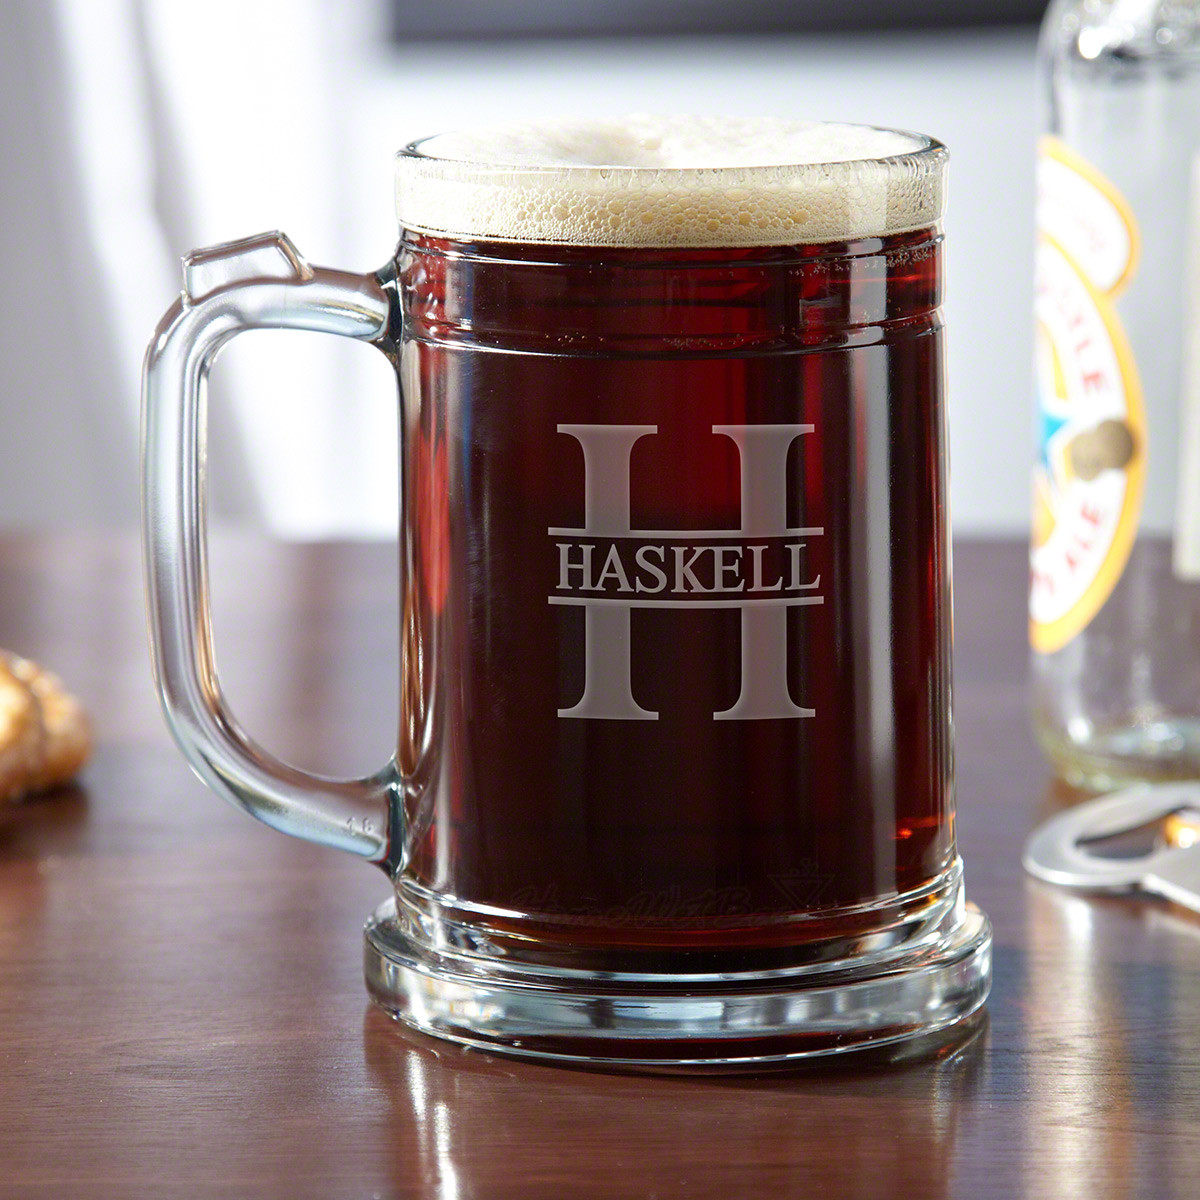 This debonair pint mug strikes the perfect balance between contemporary and traditional. This fine beer glassware comes engraved with the name and initial of your choice, creating a chic gift for groomsmen or any craft brew lover. Made in the fine traditi #mug